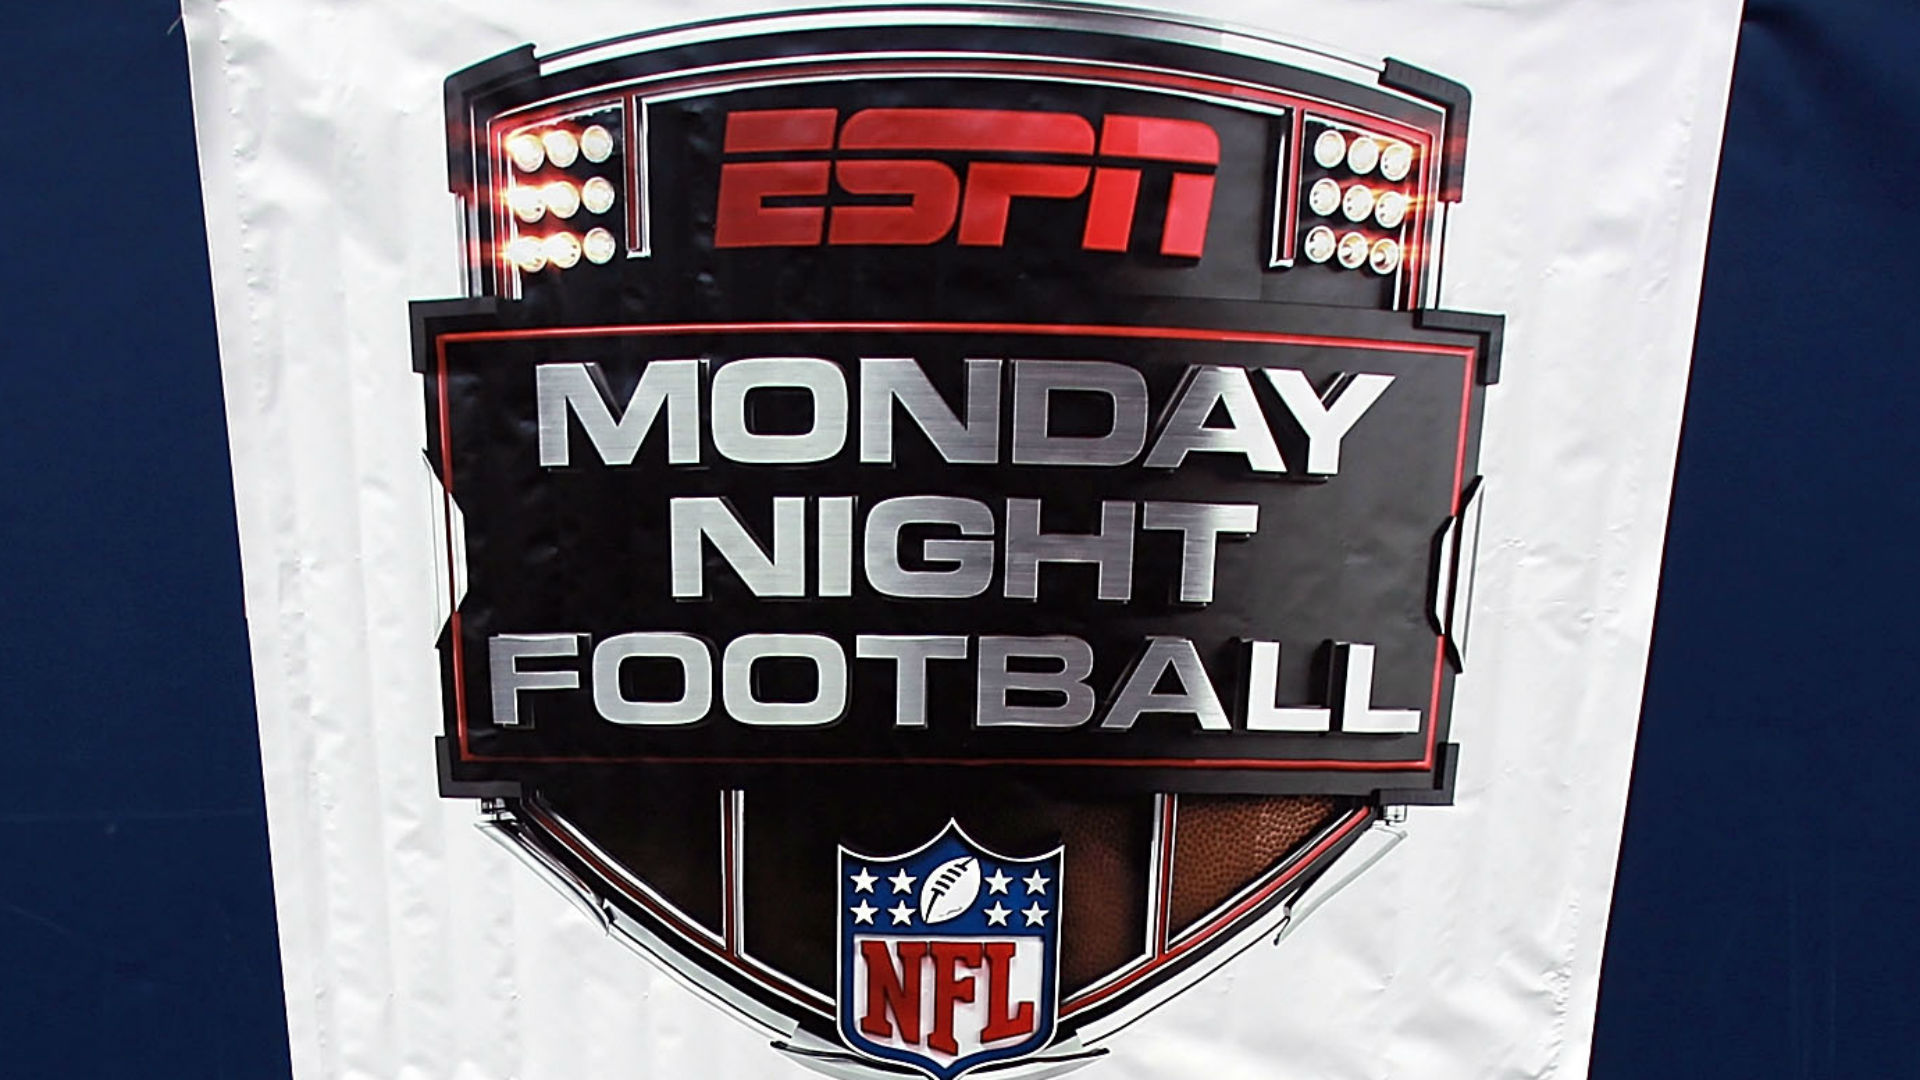 Booger McFarland to join Joe Tessitore in 'Monday Night Football' booth